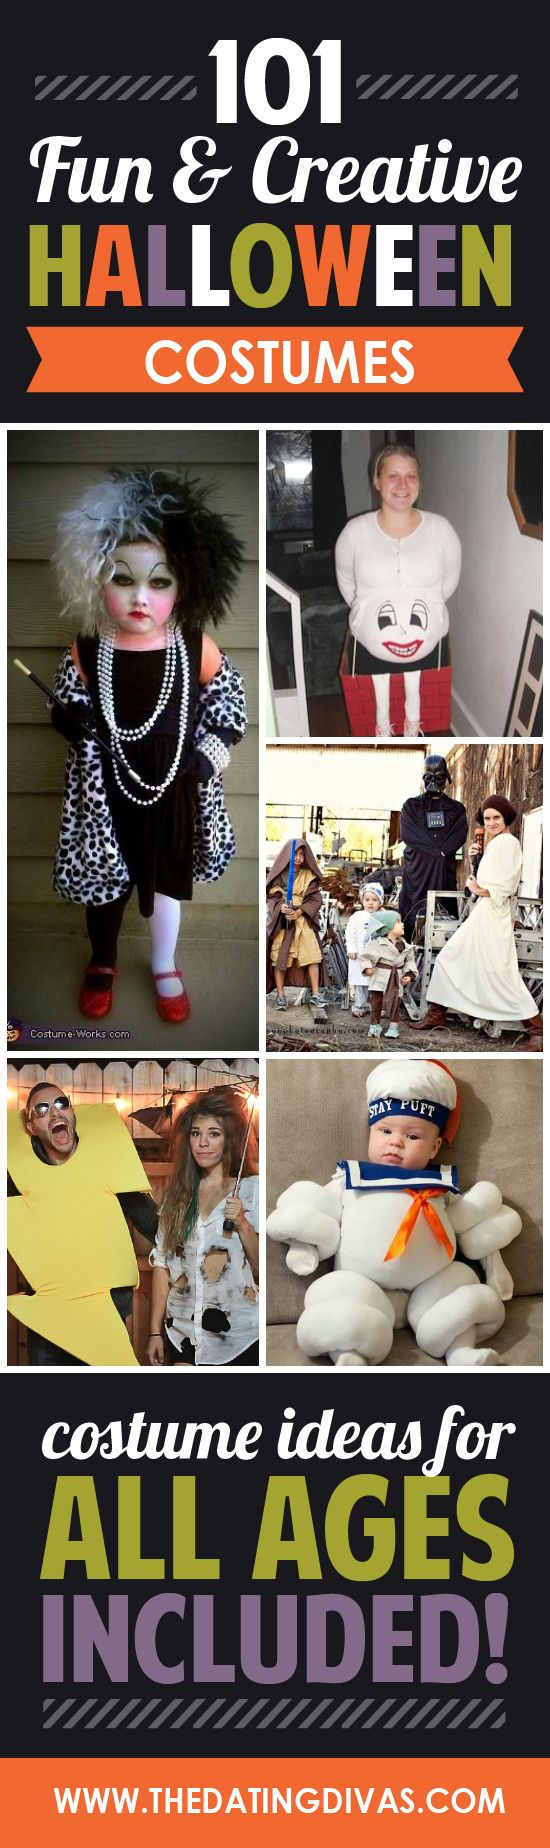 This list of Halloween costumes is just what I was looking for! www.TheDatingDivas.com